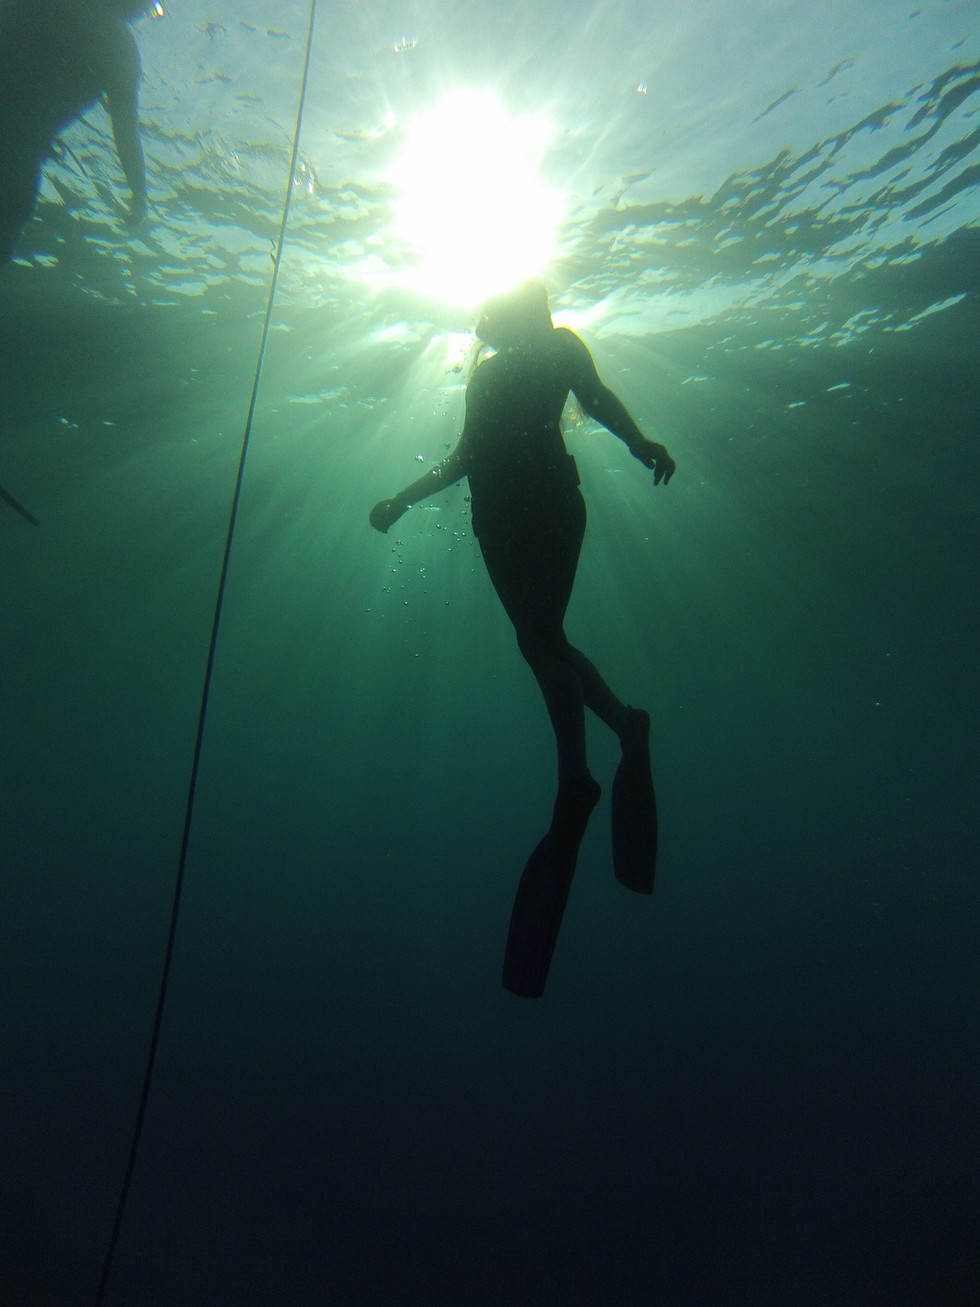 What to look for when choosing your freediving instructor